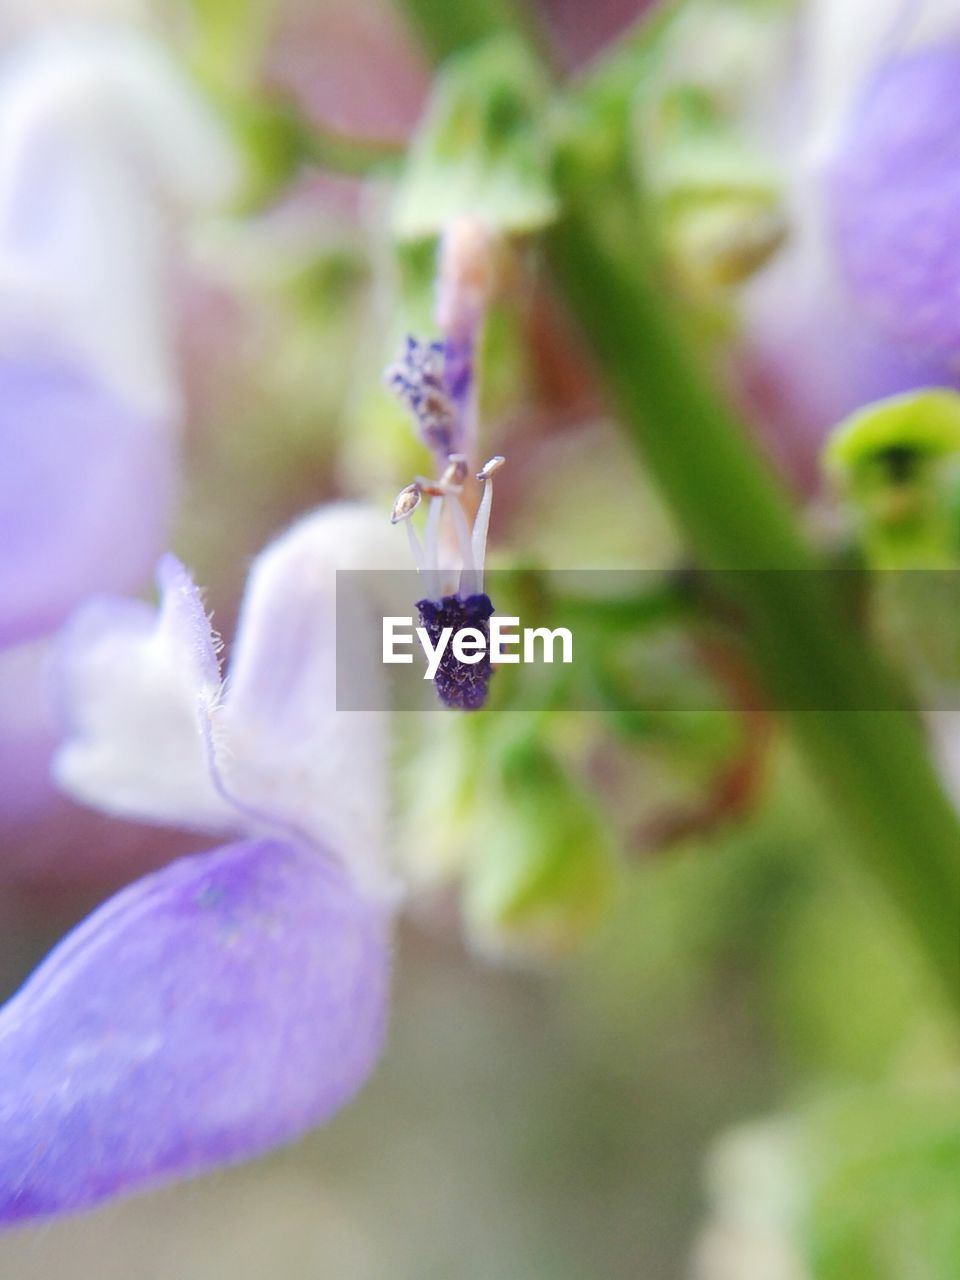 flower, flowering plant, plant, growth, fragility, vulnerability, freshness, close-up, beauty in nature, selective focus, purple, petal, no people, nature, inflorescence, day, flower head, botany, outdoors, bud, springtime